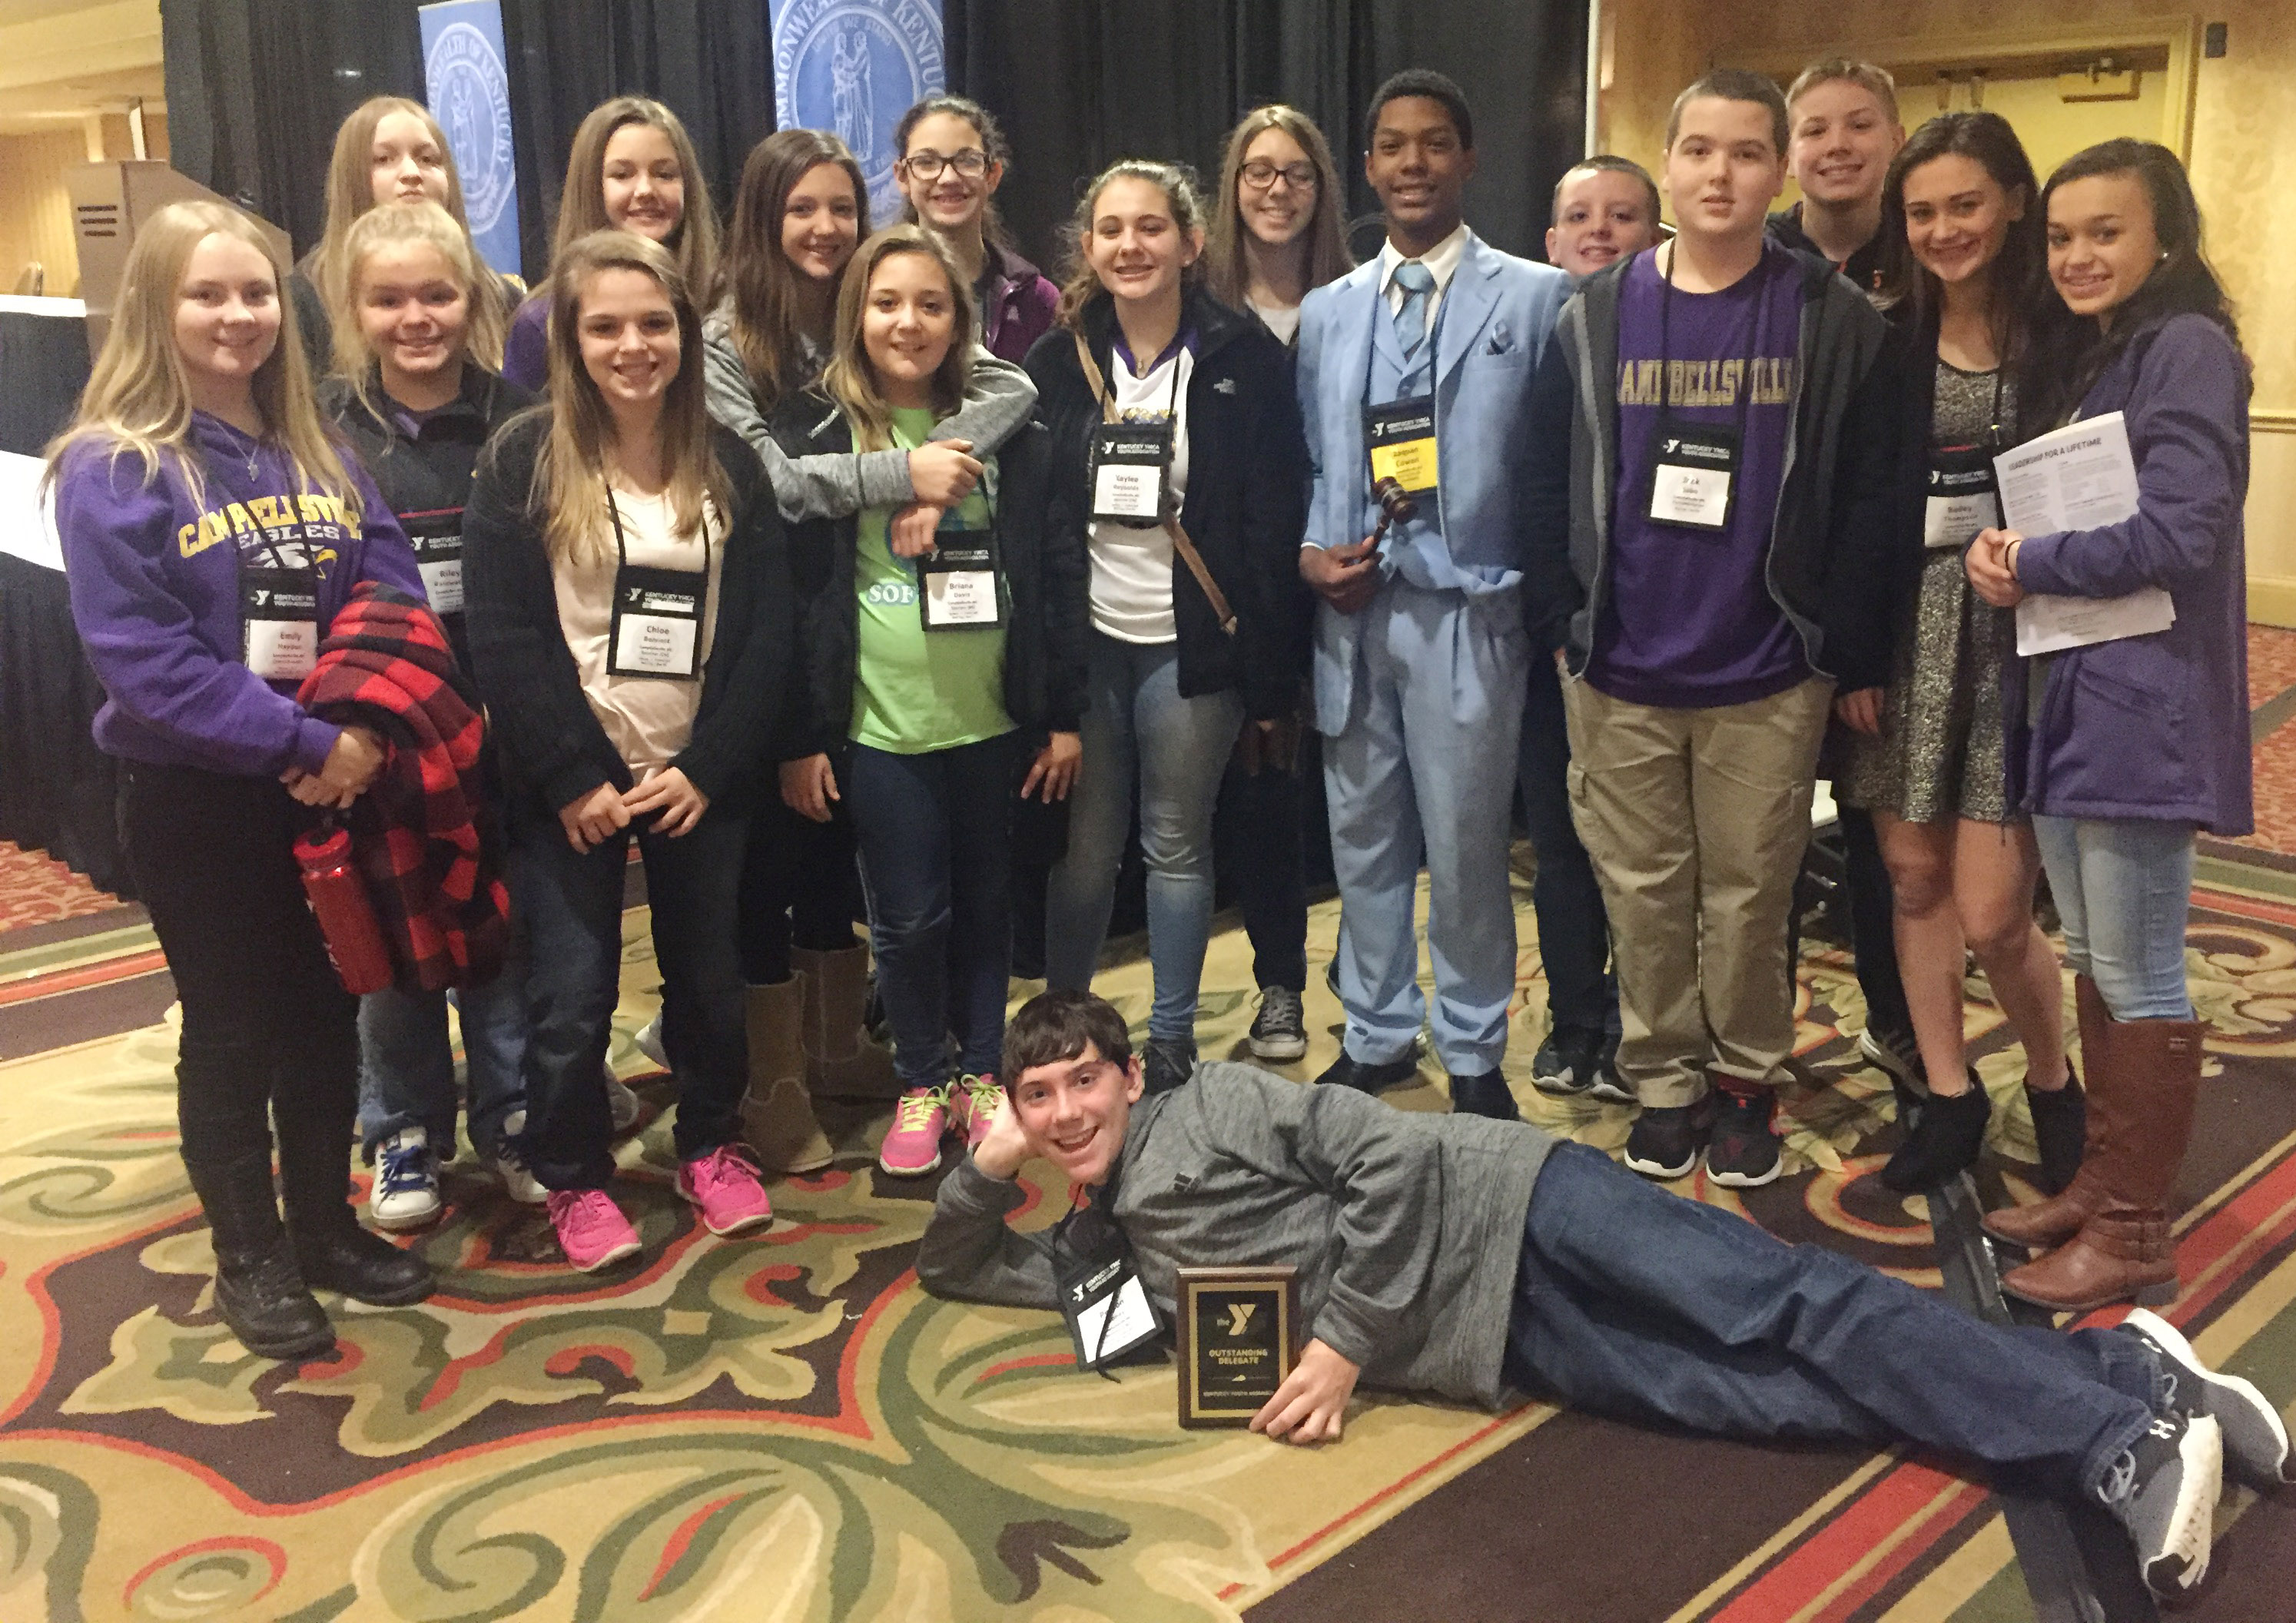 Students attending this year's KYA convention include, in front, seventh-grader Peyton Dabney, and, from left, second row, eighth-grader Emily Hayden, seventh-grader Riley Rainwater, eighth-grader Chloe Bennett, sixth-grader Briana Davis, eighth-graders Kaylee Reynolds and Zaquan Cowan, seventh-grader Jack Sabo, CHS freshman Bailey Thompson and seventh-grader Tayler Thompson. Back, eighth-grader Destiny Hicks, sixth-graders Haylee Allen, Bri Hayes and Mary Russell, eighth-grader Abi Wiedewitsch and sixth-graders Jacob Judd and Wesley Reynolds.